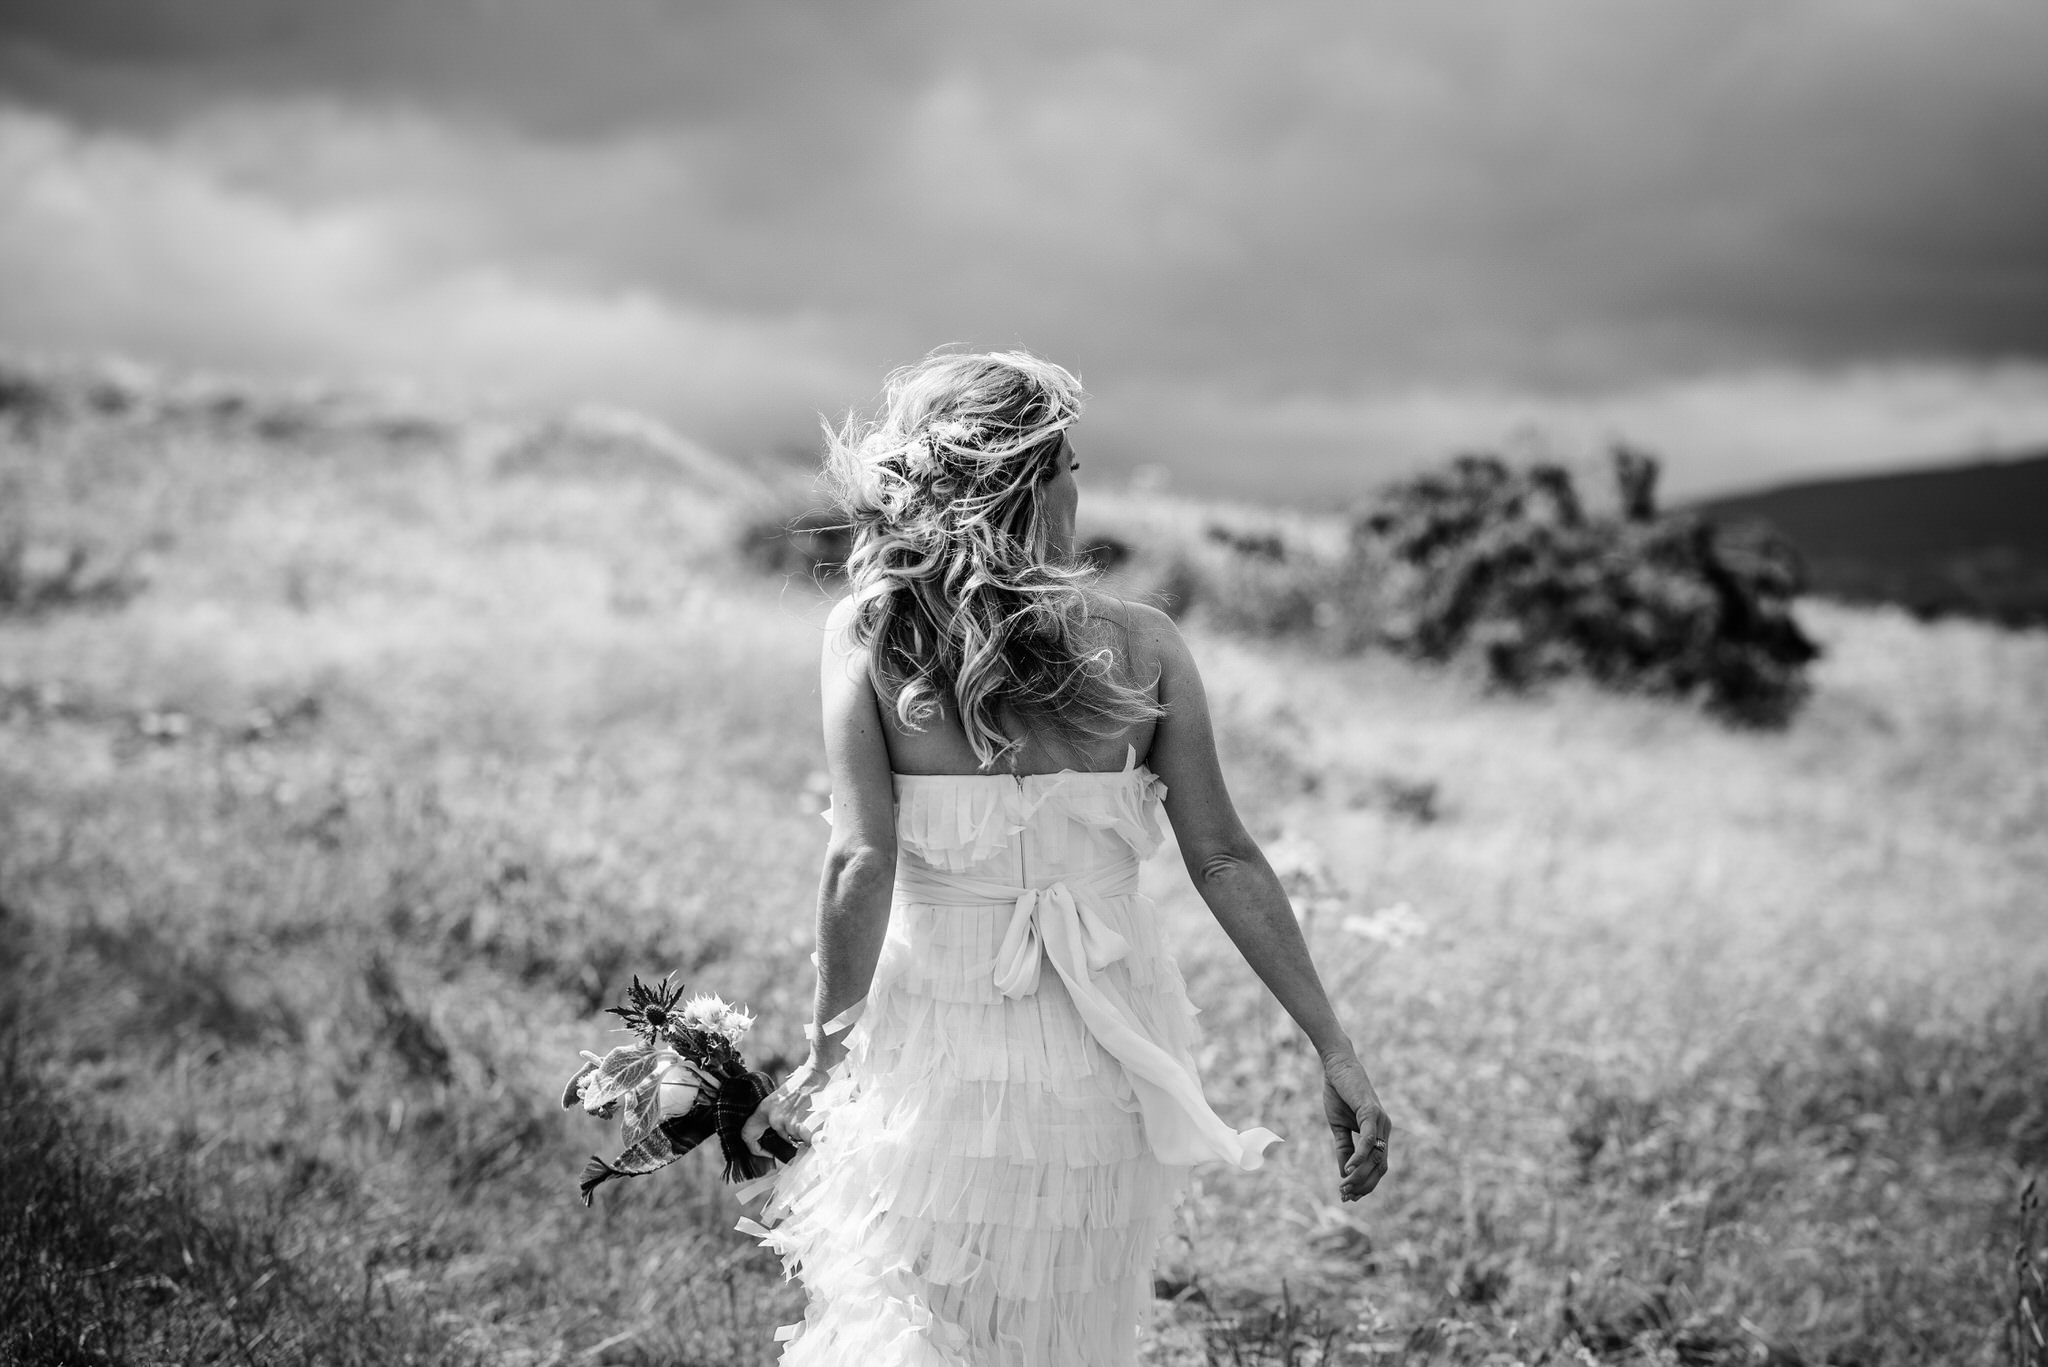 Bride on her way to her Handfasting in Bray, Ireland - International Destination Wedding by Zee Anna Photography